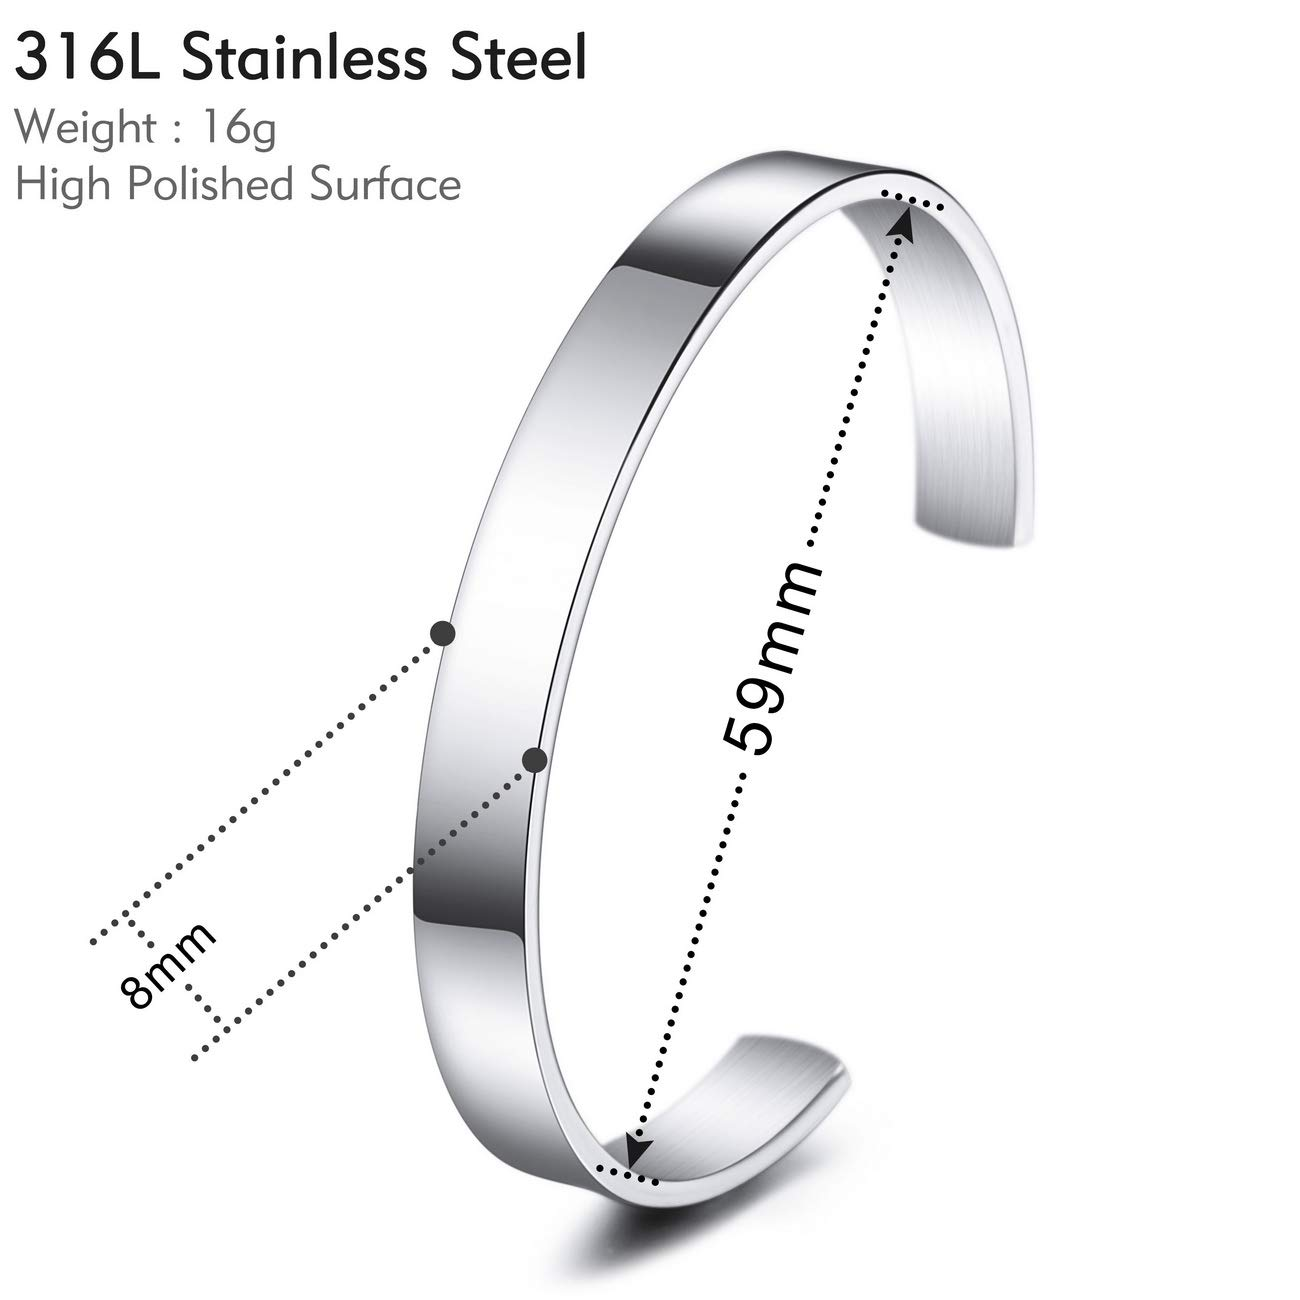 8mm Wide, Small and Large Sizes MeMeDIY Personalized Bracelet Engraving Name Identification ID Customized for Men Women Girls Water Resistant Stainless Steel Adjustable Cuff Bangle